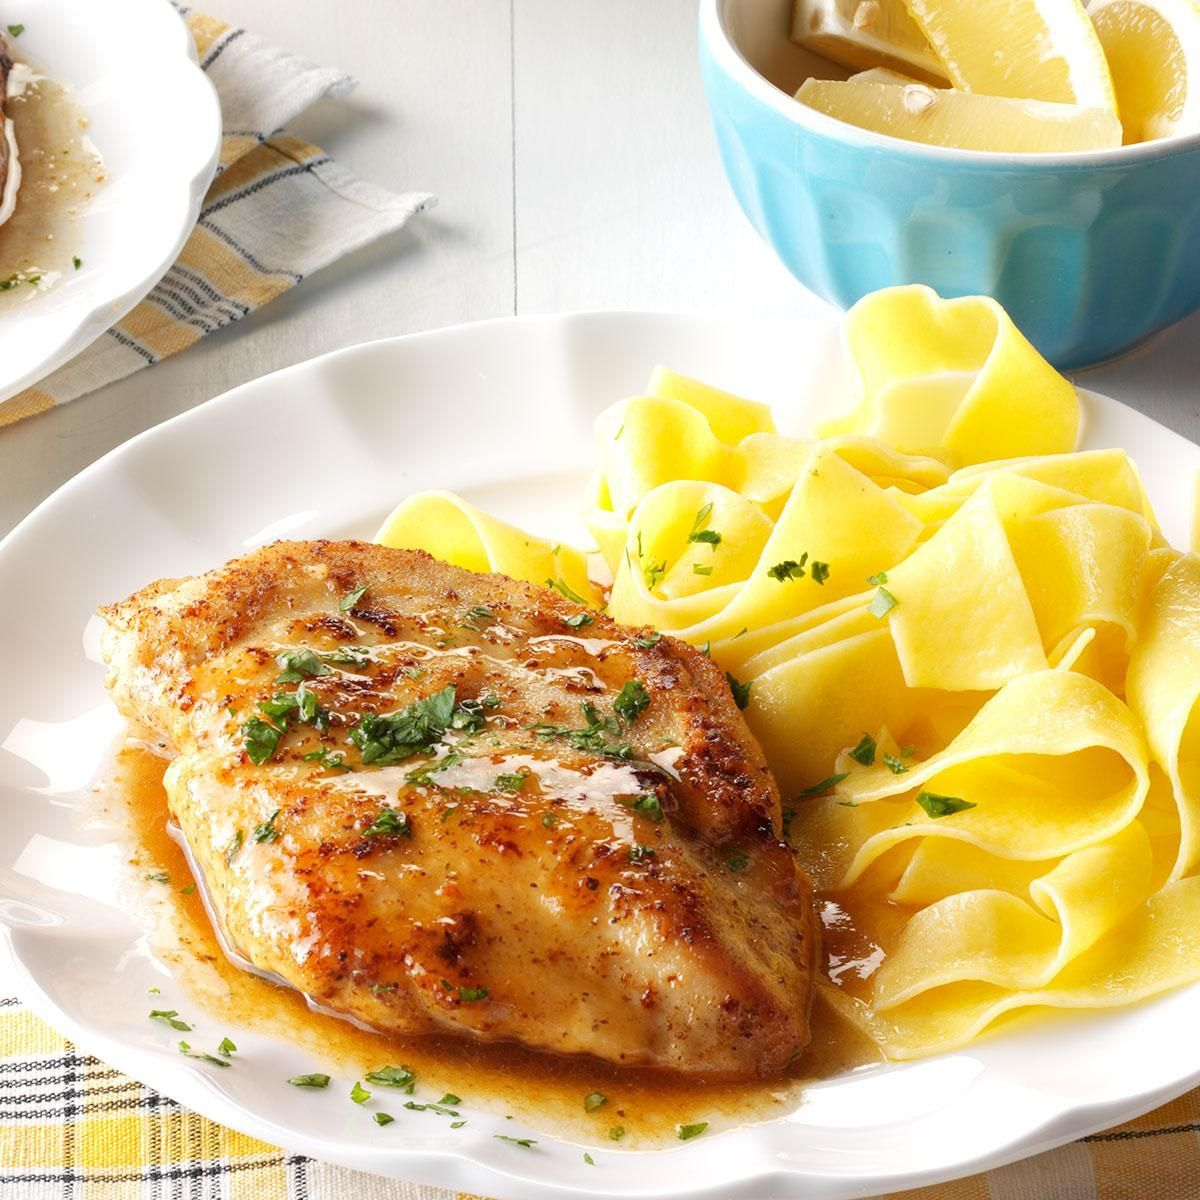 Chicken Piccata Quick Chicken Piccata Recipe  **cut chicken into strips, doubled white wine, served with buttered egg noodles & garlic Parmesan broccoliQuick Chicken Piccata Recipe  **cut chicken into strips, doubled white wine, served with buttered egg noodles & garlic Parmesan broccoli